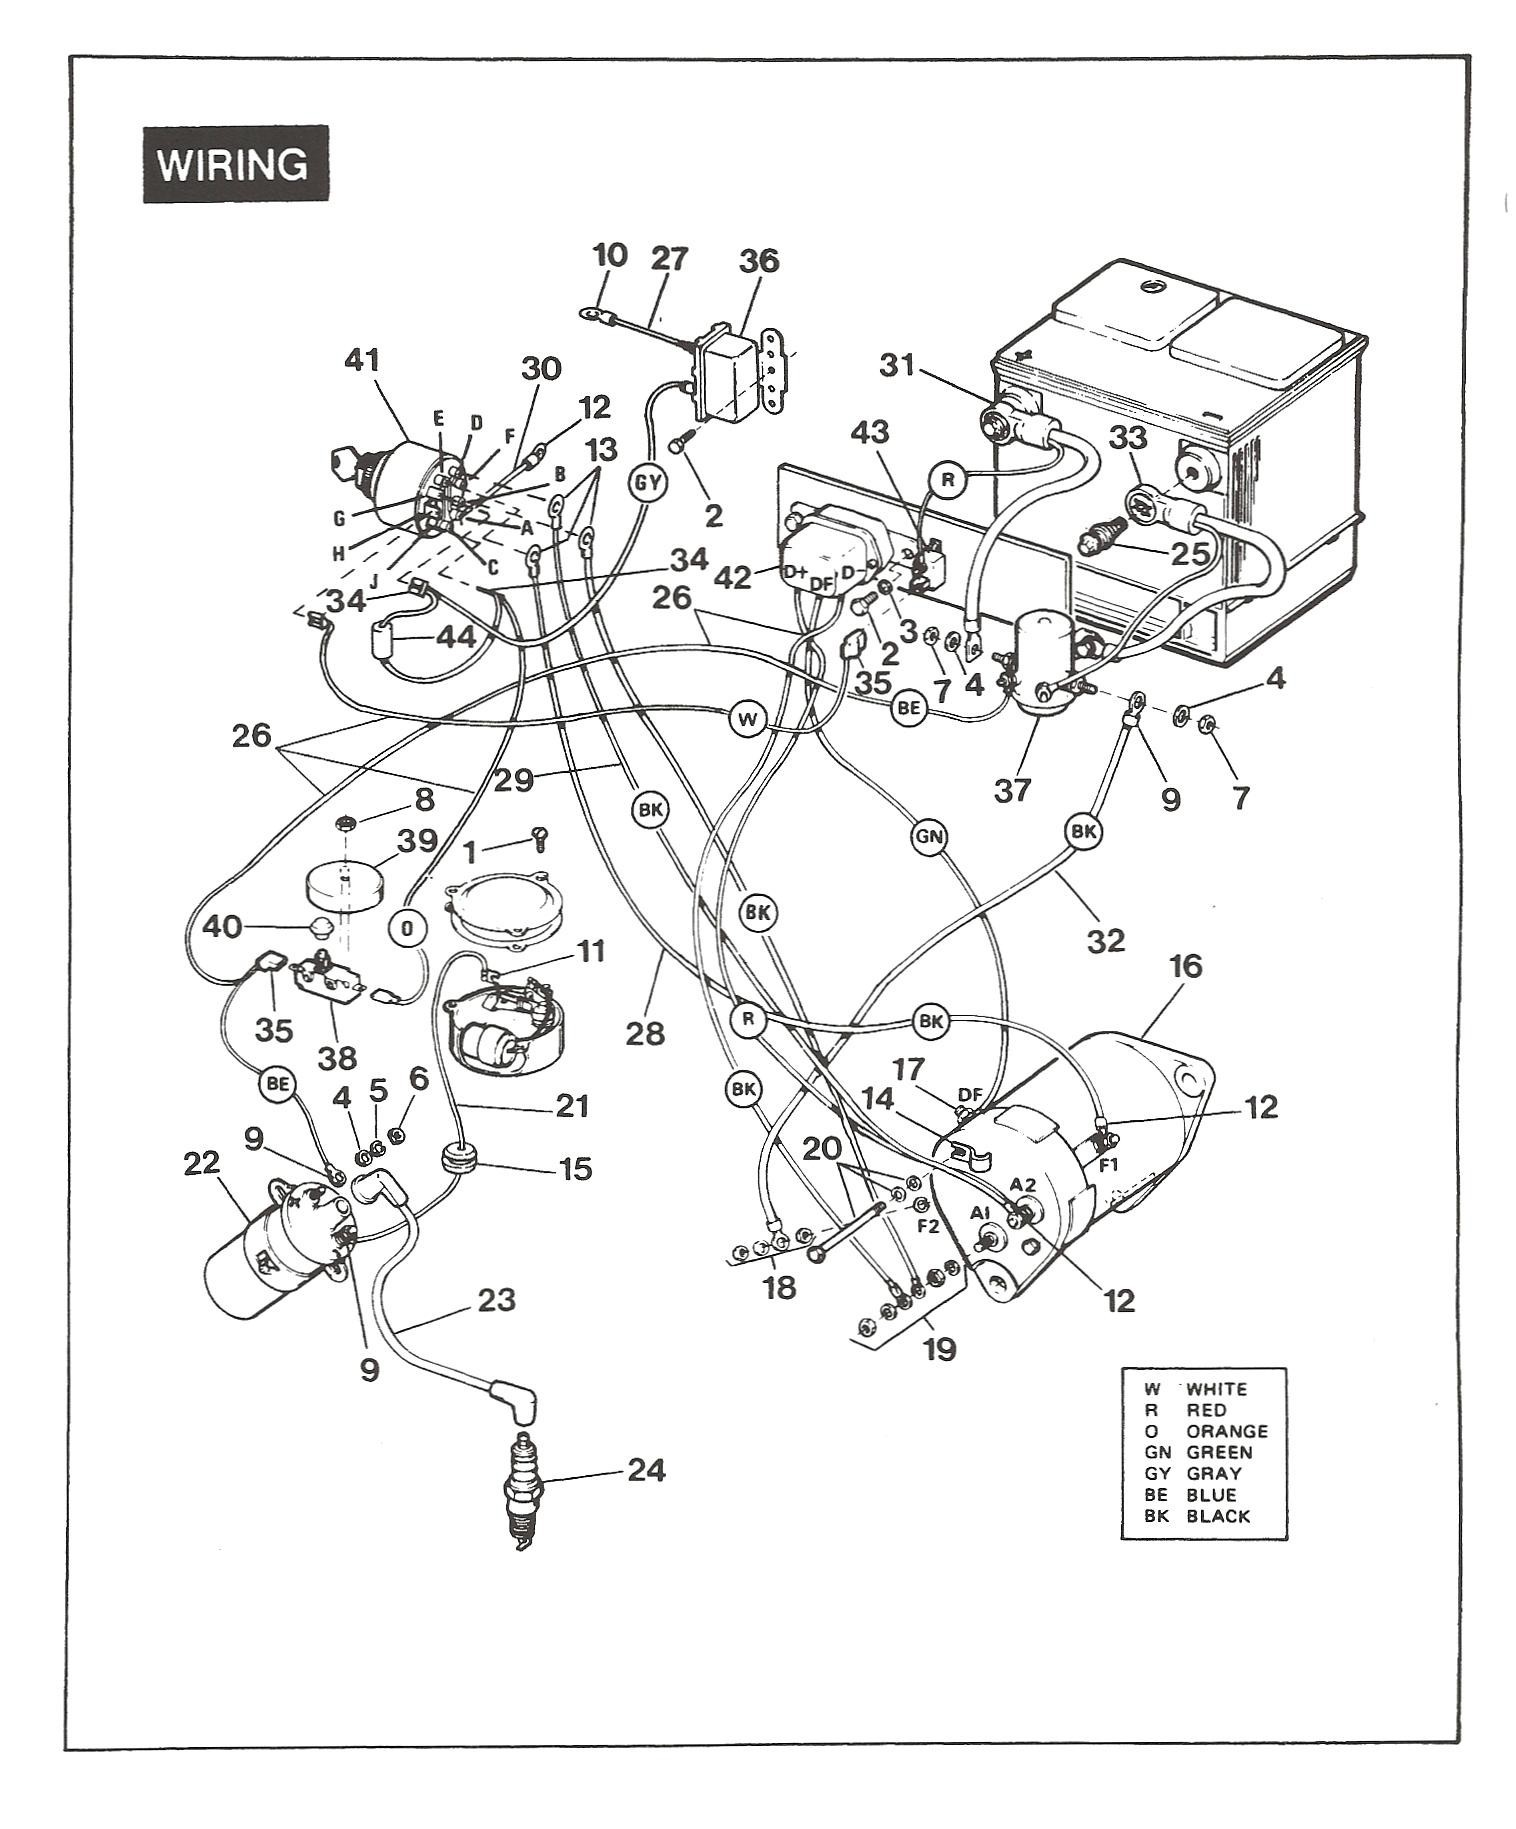 790be3e 1984 ez go golf cart wiring diagram | wiring library  wiring library